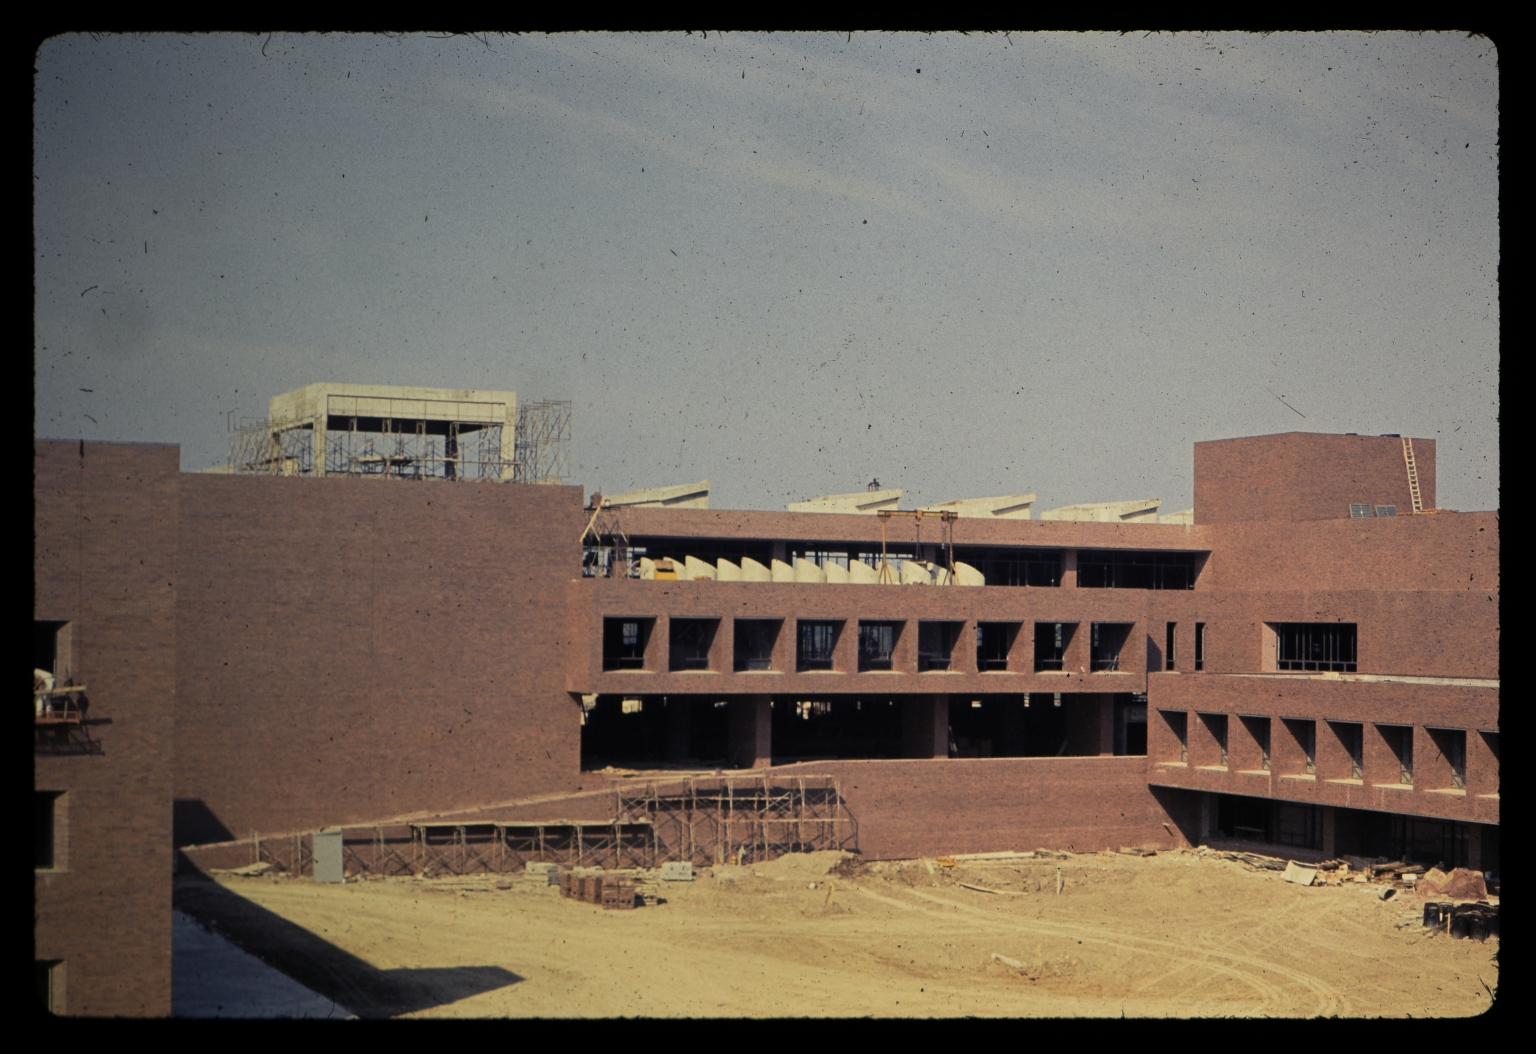 Construction of James E. Booth Hall